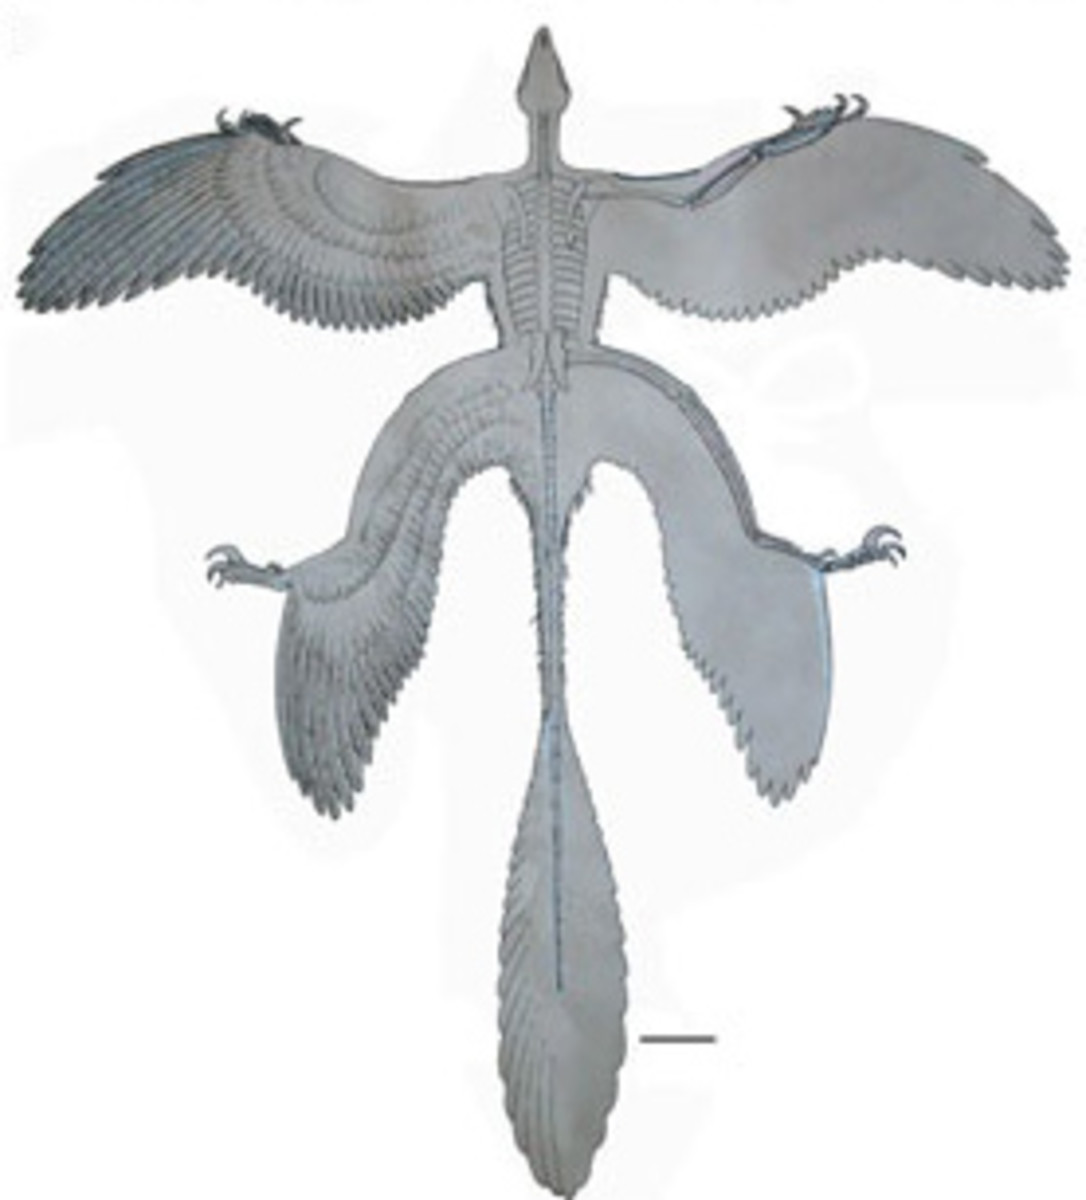 Illustration of a microraptor with it's limbs spread out like a flying squirrel.